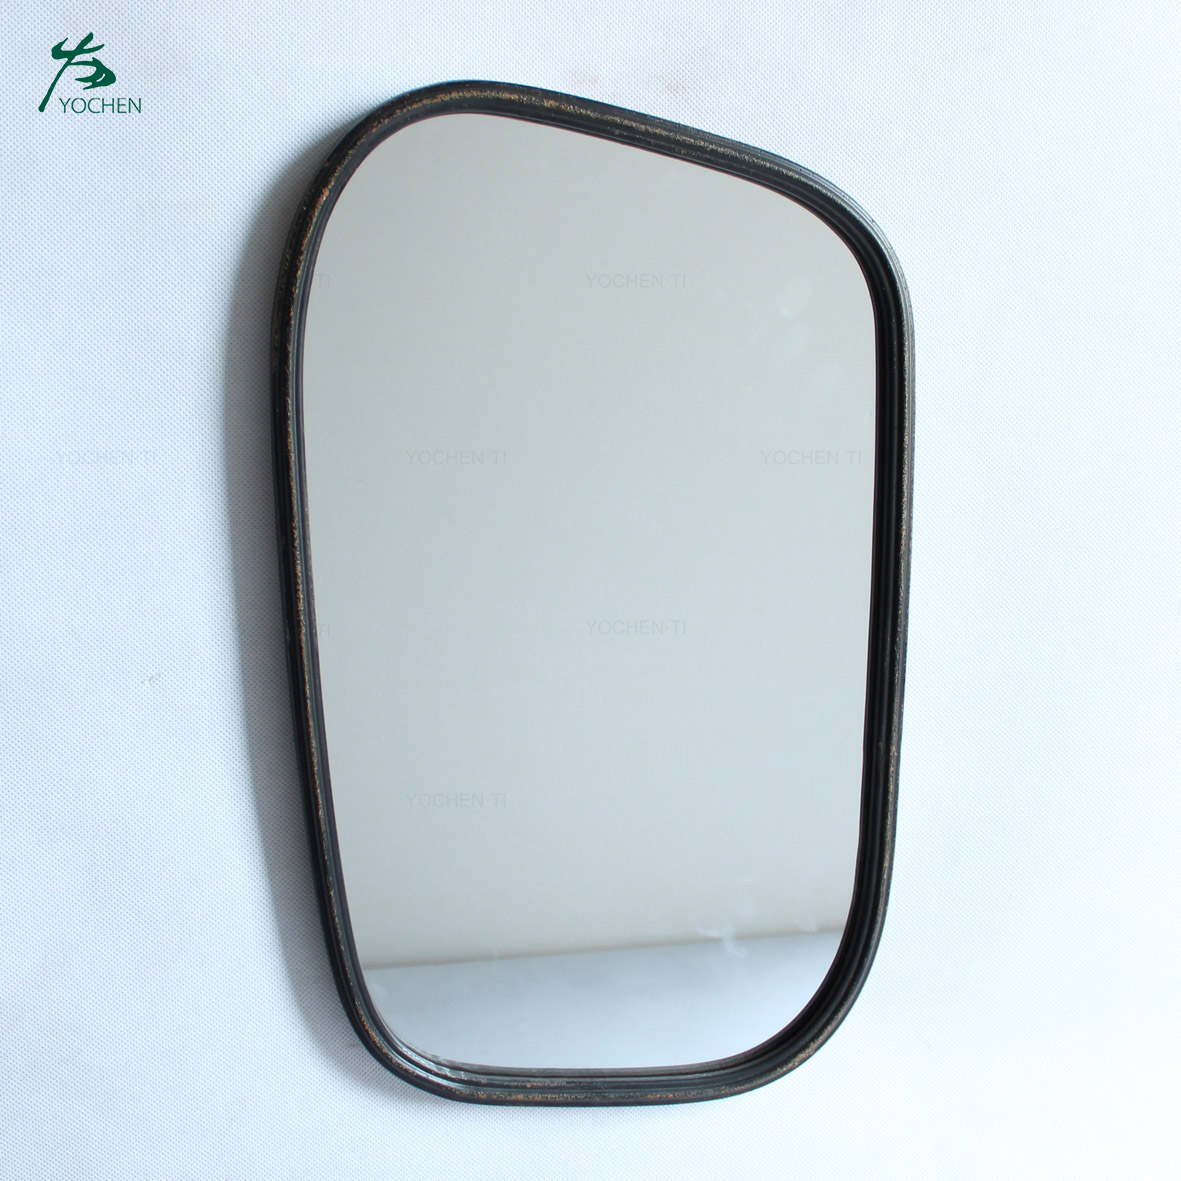 Black mirror frame wall mirror with black frame in modern design